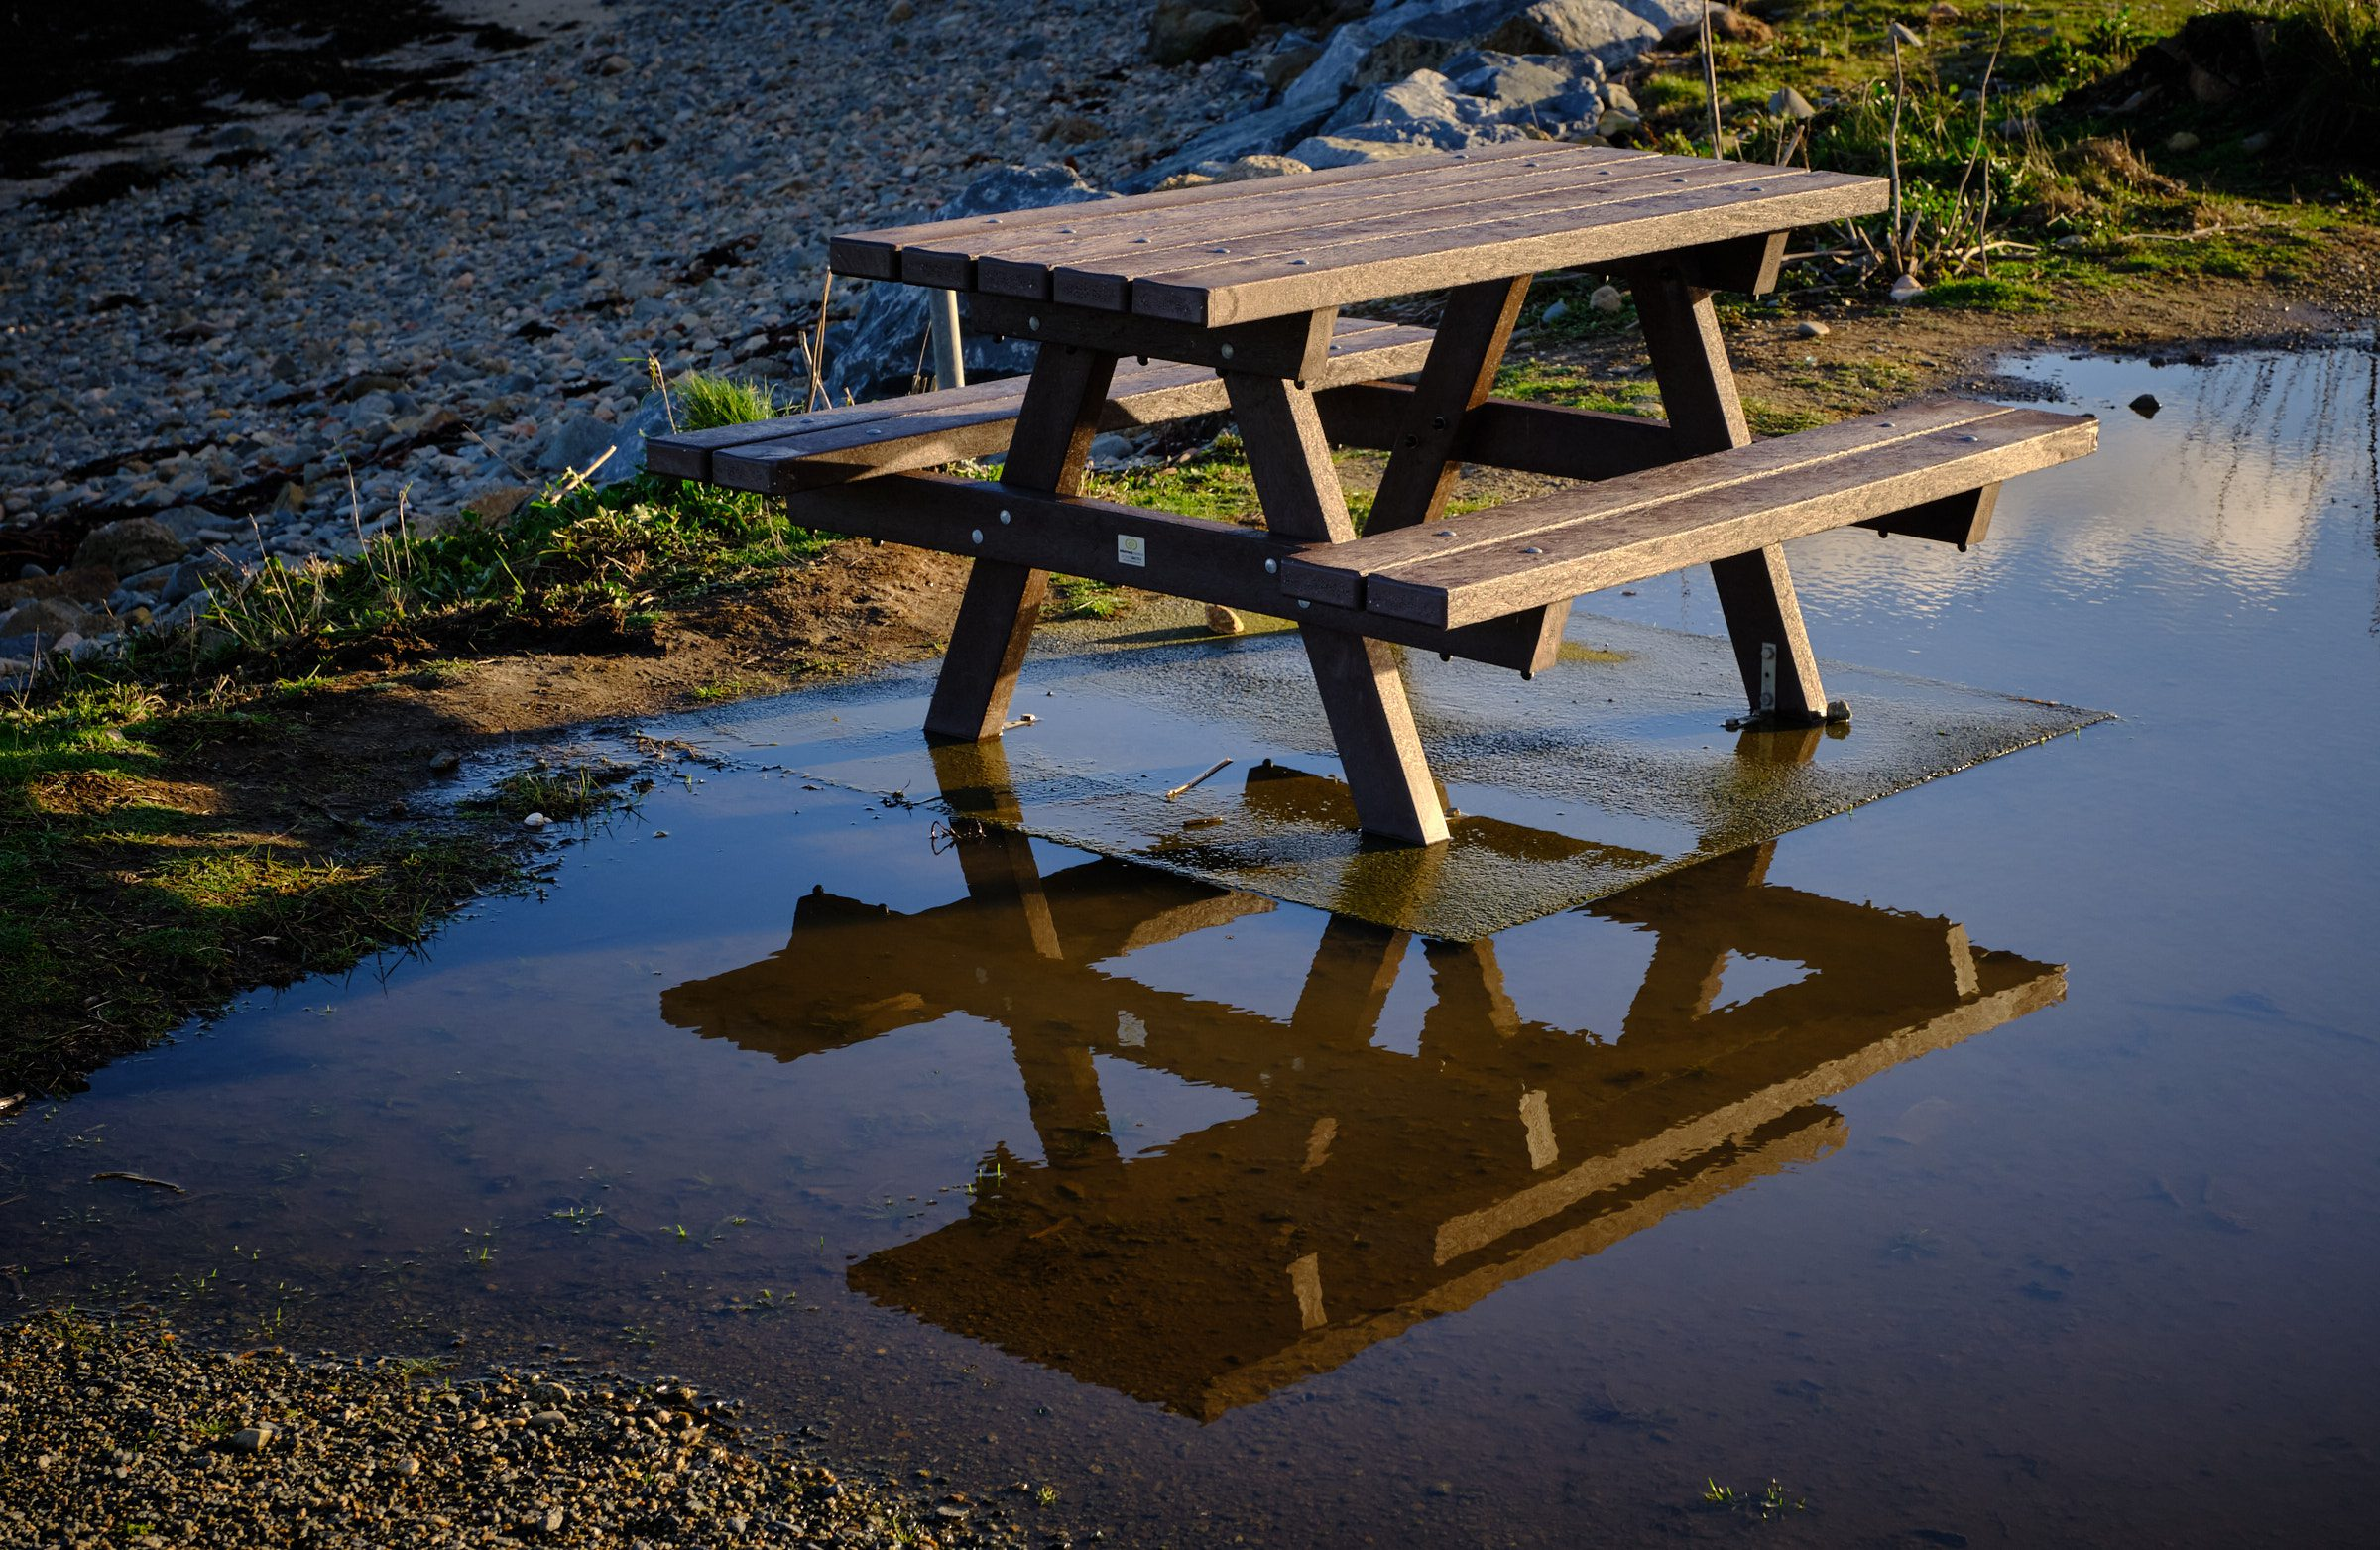 Picnic bench in puddle